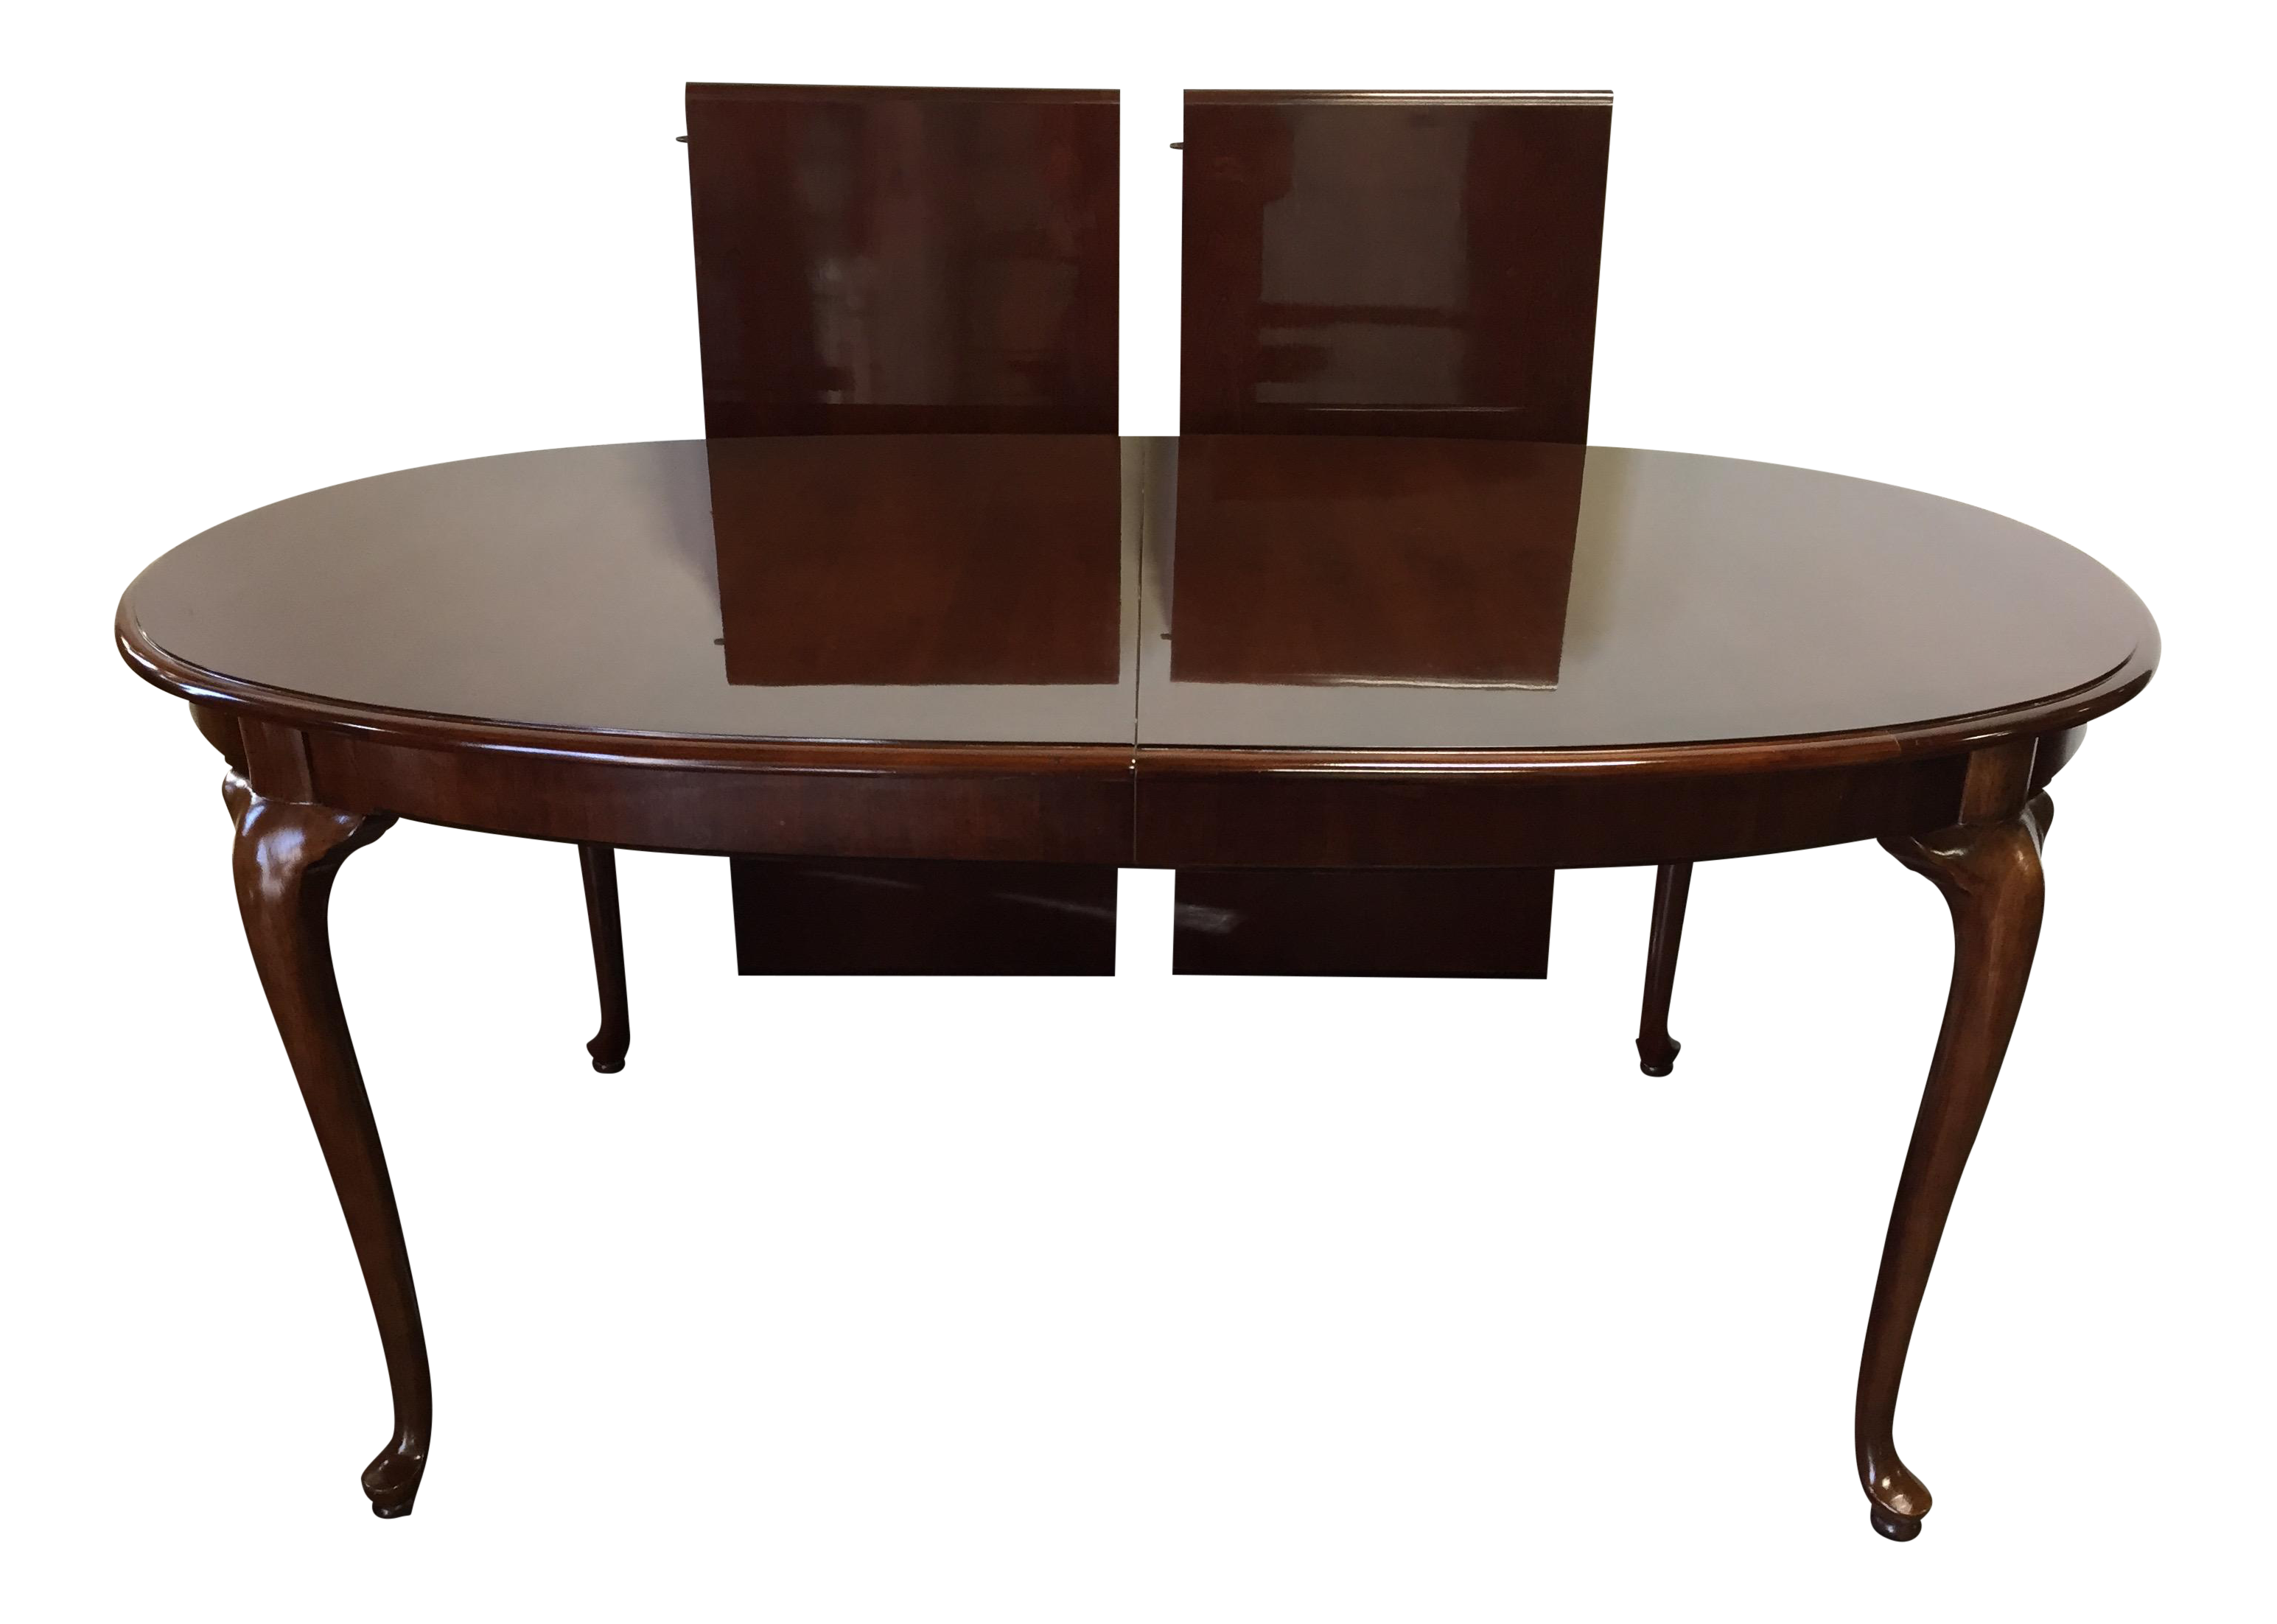 Thomasville Cherry Queen Anne Dining Table Chairish : a7a68ffe f34e 4573 953b f7738fd3b8a8aspectfitampwidth640ampheight640 from www.chairish.com size 640 x 640 jpeg 20kB